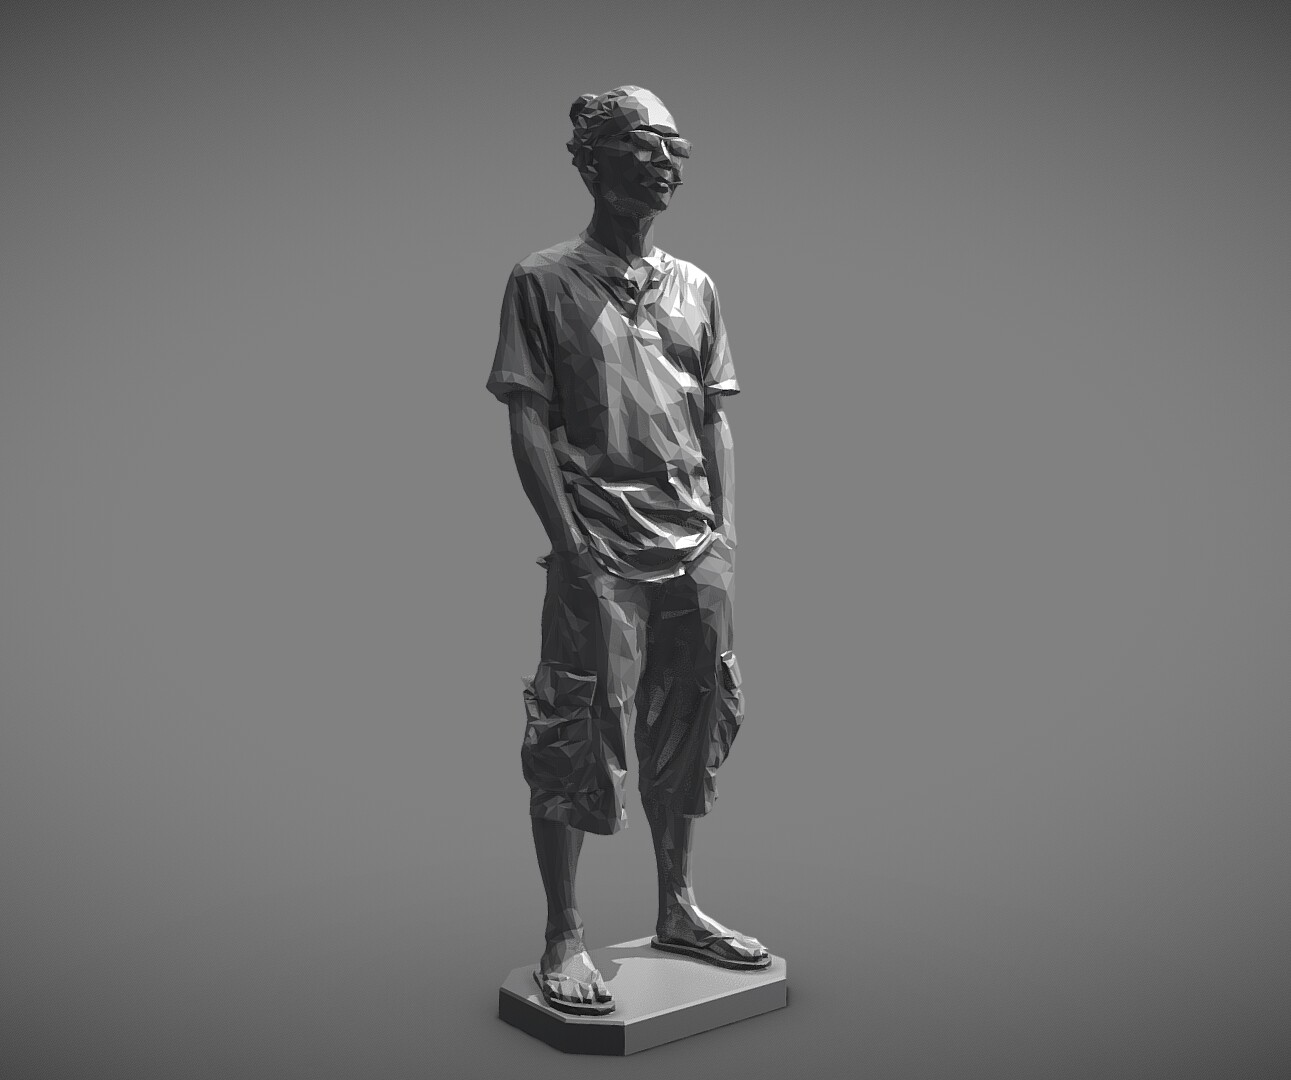 Michael wu mw 3d printing test low downlox free 3d model by mwopus mwopus sketchfab20190320 007953